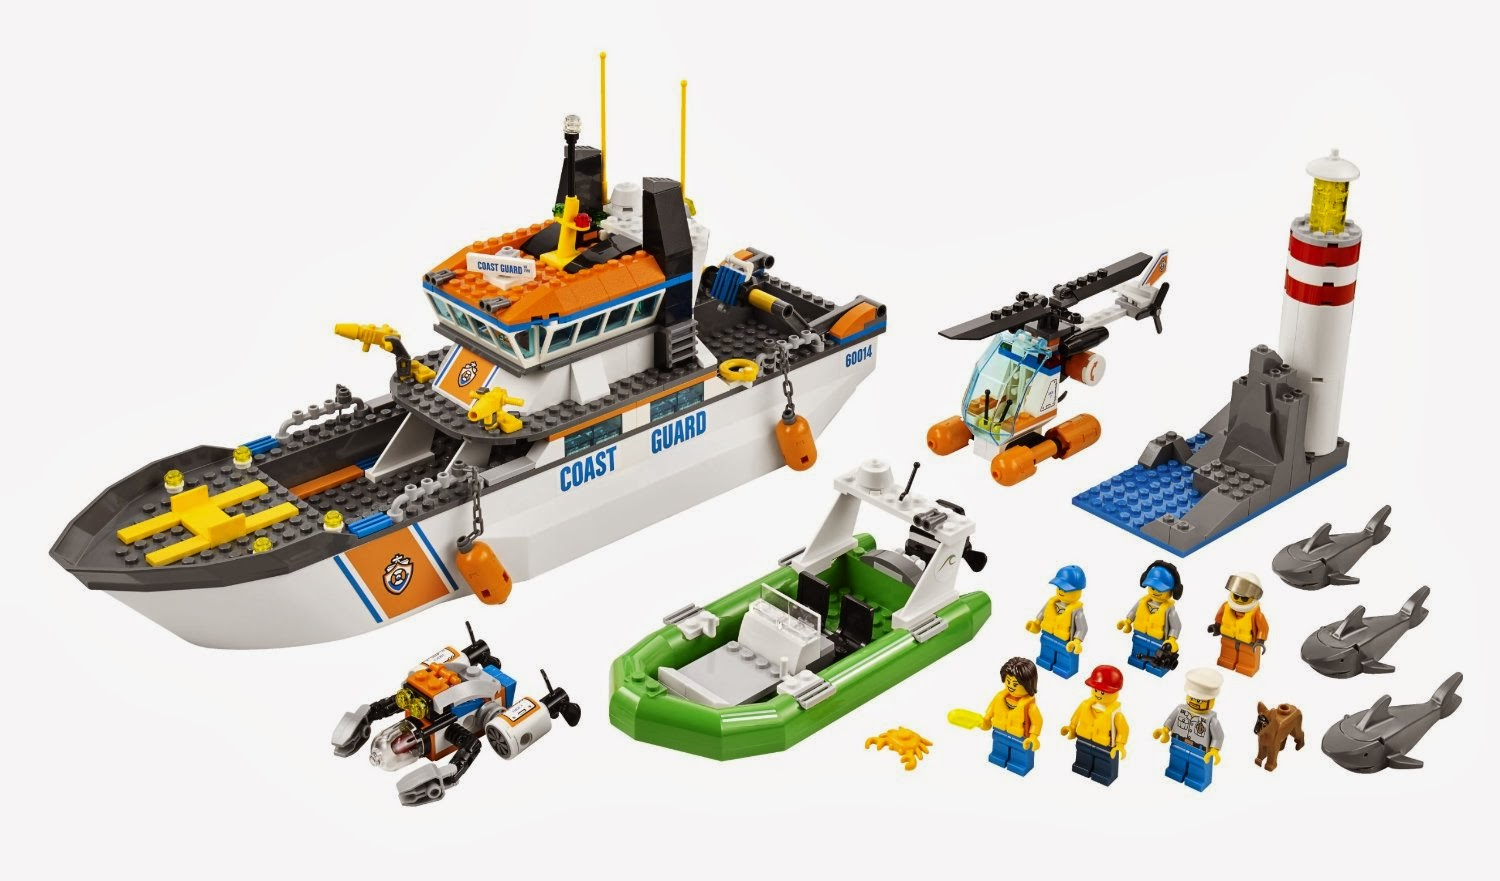 cheap helicopters with Lego Coast Guard Patrol on Assembling a bgm71 tow missile further Showthread likewise Aircraft Startup Cobalt Valkyrie Private Jet 11 17 2015 further Soviet Cold War Aircraft furthermore Inside The Most Luxurious Cruise Ship Suites In The World.